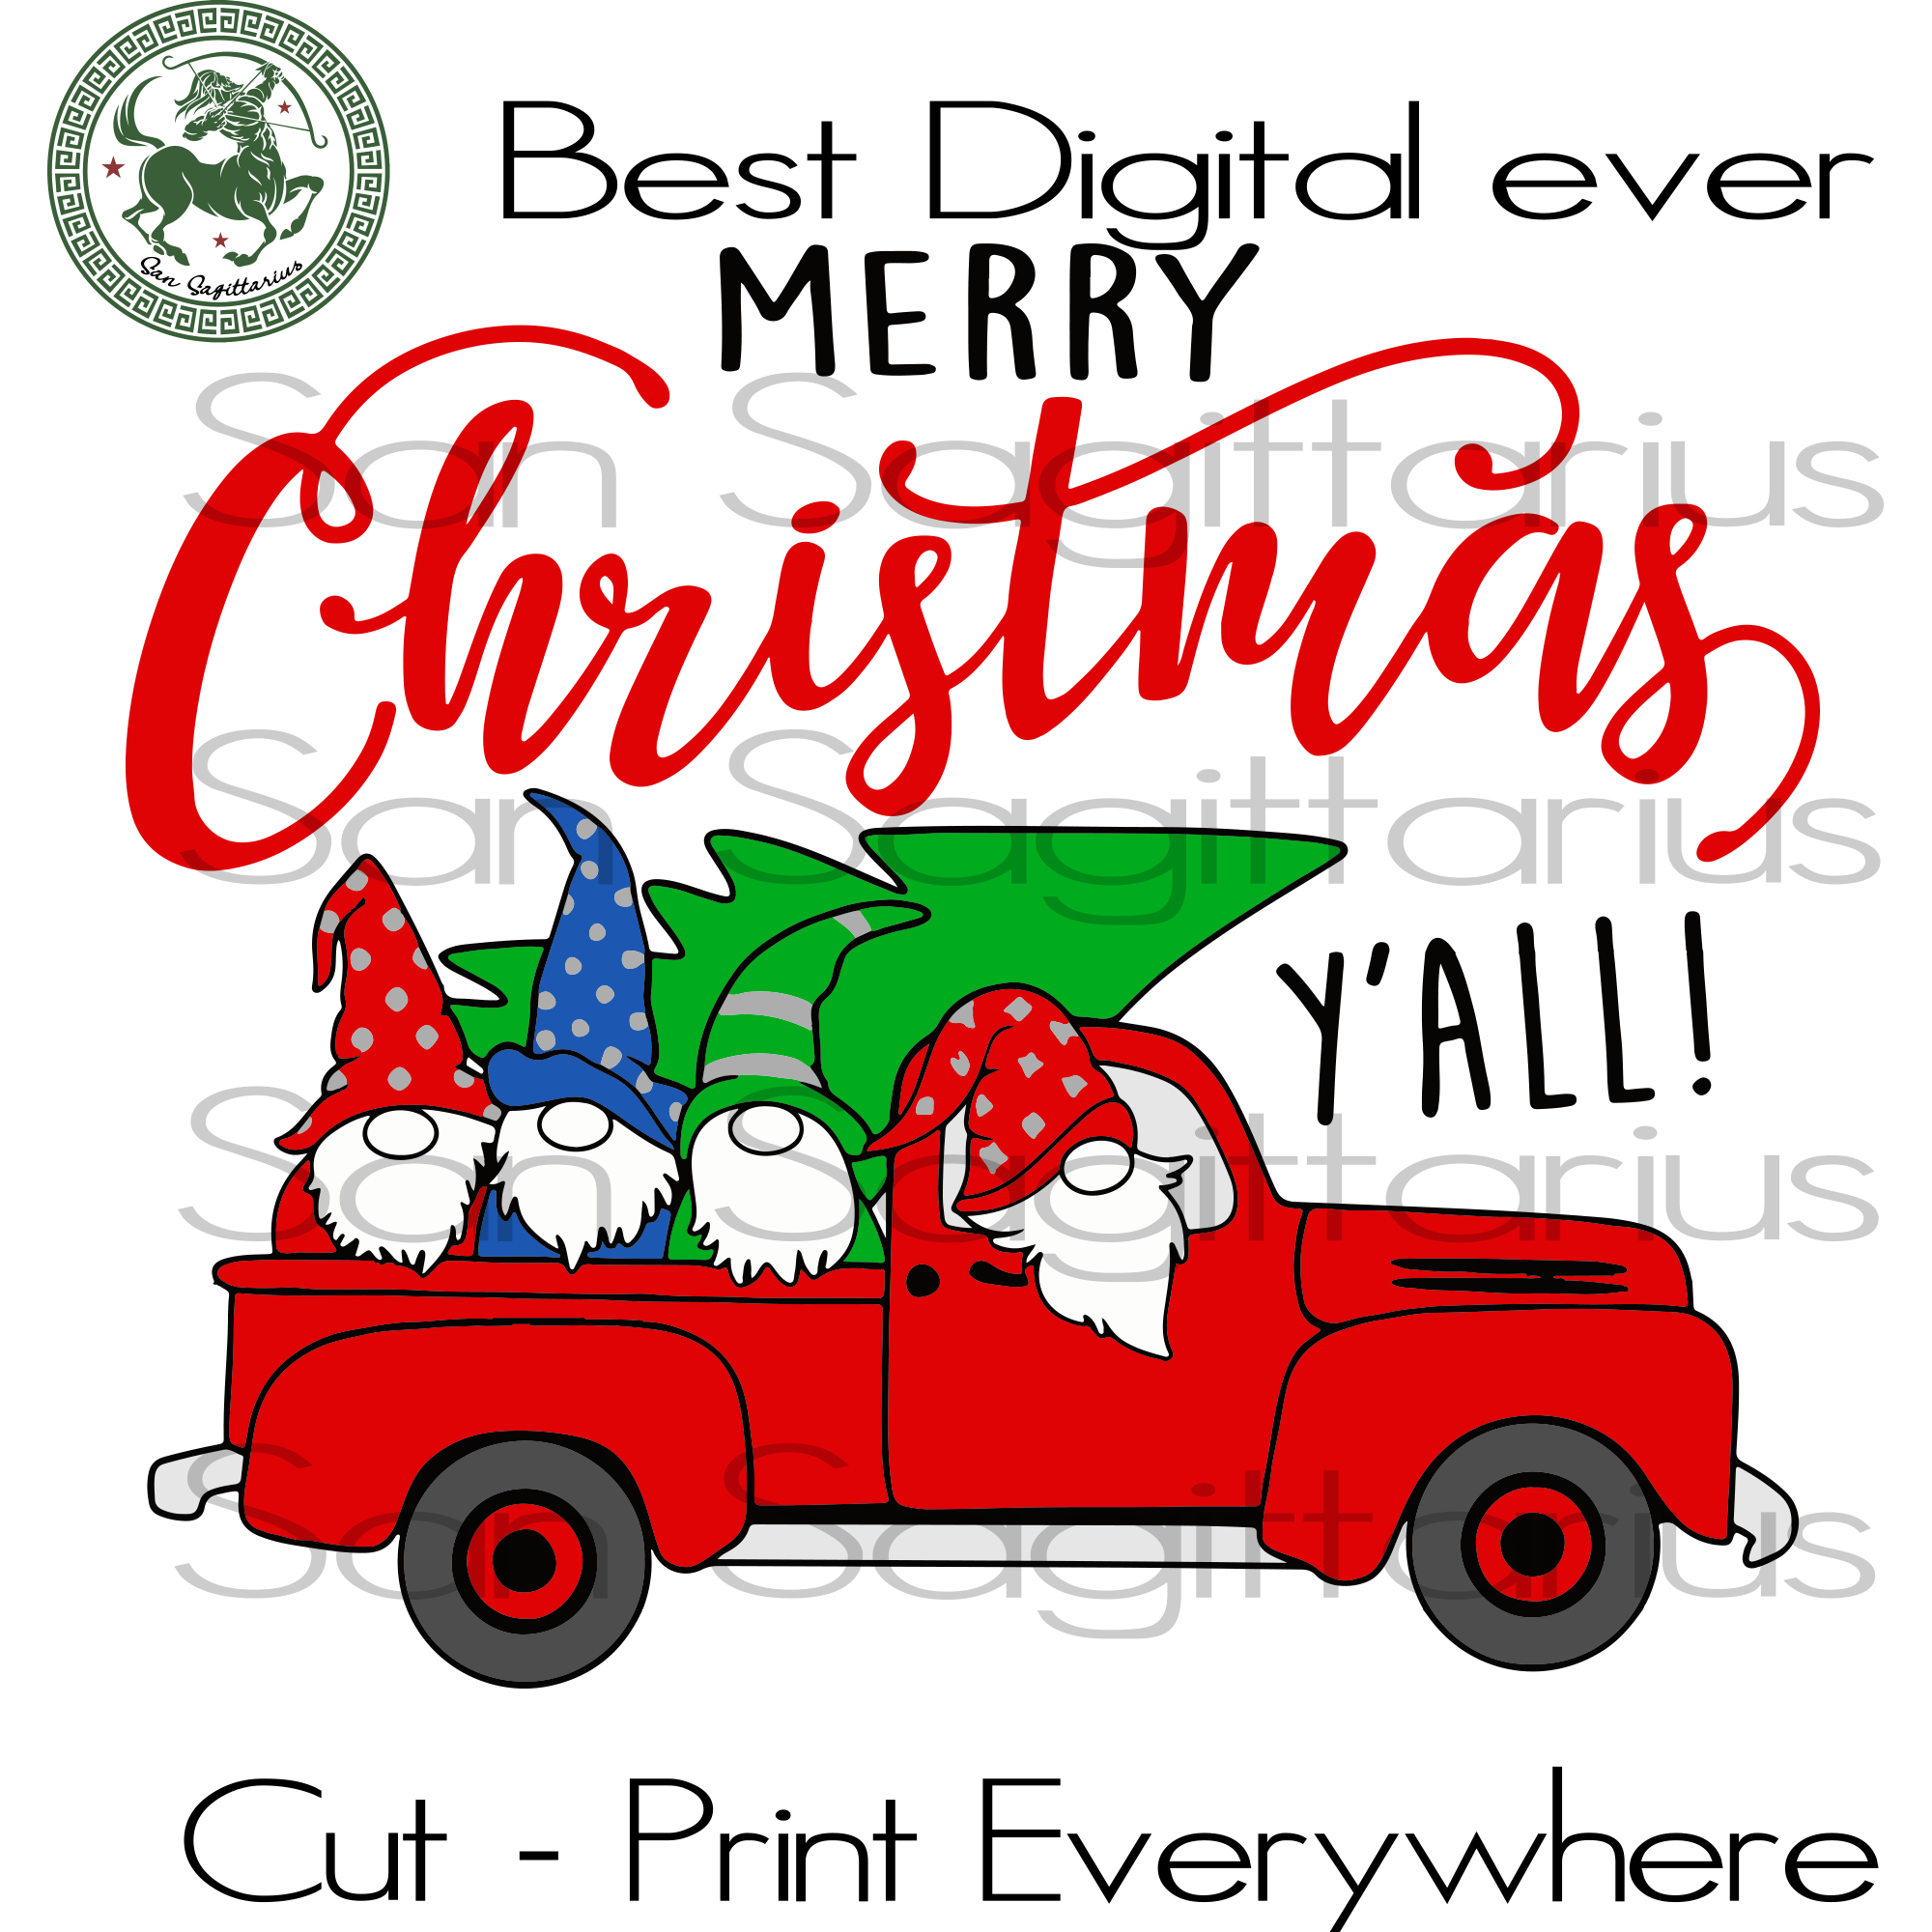 Gnomies Car Christmas, Christmas Svg, Gnome Svg, Christmas Svg, Xmas Svg, Christmas Gnomies, Gnomies Shirts, Christmas Gifts, Merry Christmas, Christmas Holiday, Christmas Party, Funny Christ